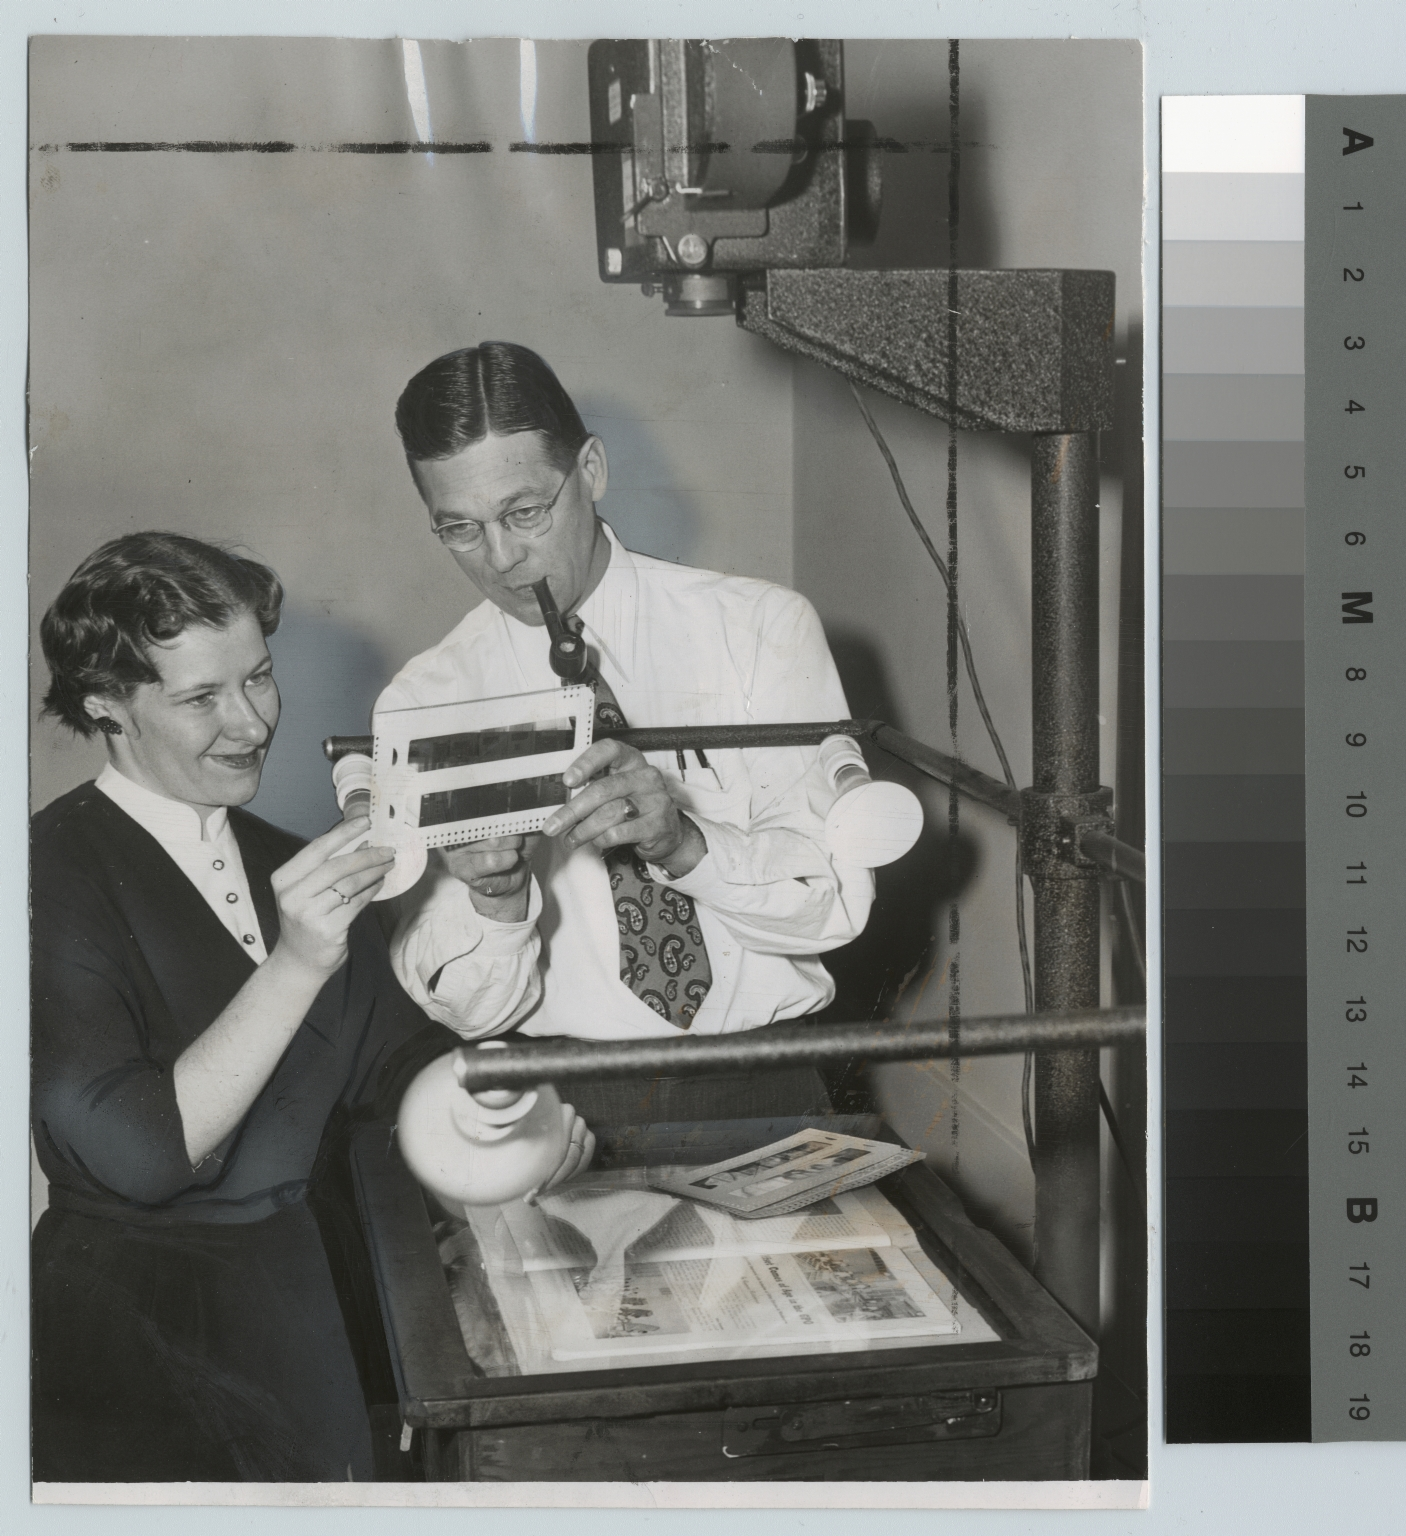 Examiniing slide in Graphic Arts Research Department, Rochester Institute of Technology [1954]